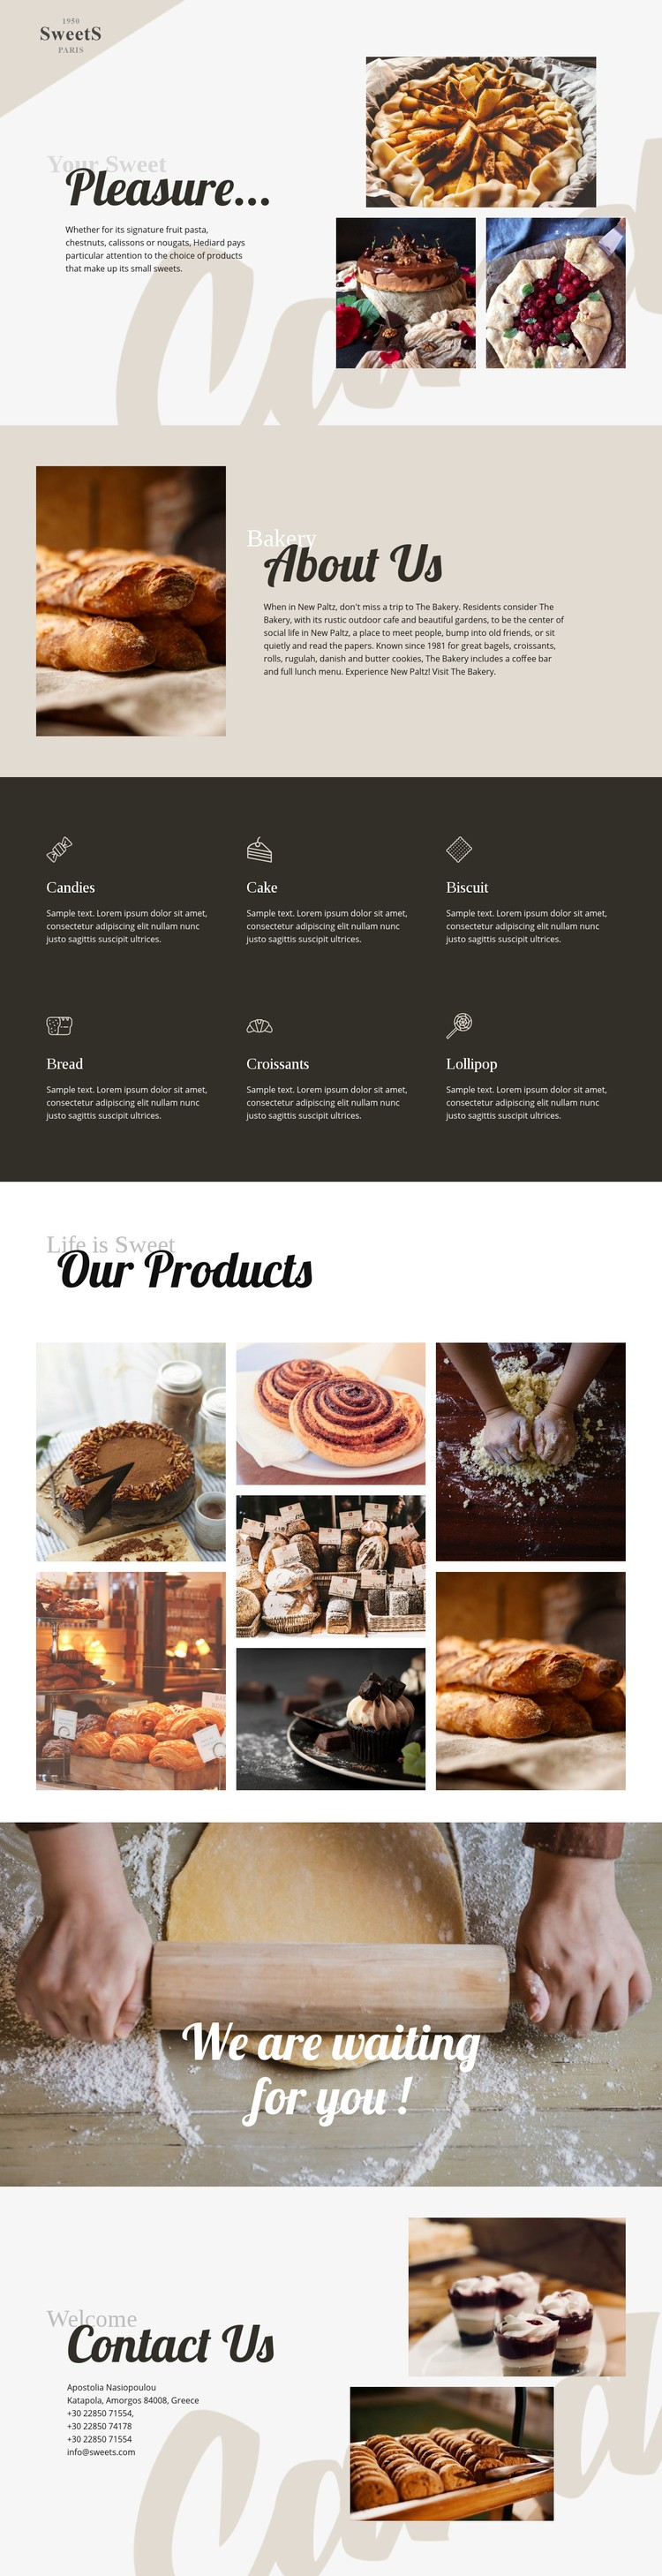 Cakes and baking food Website Creator